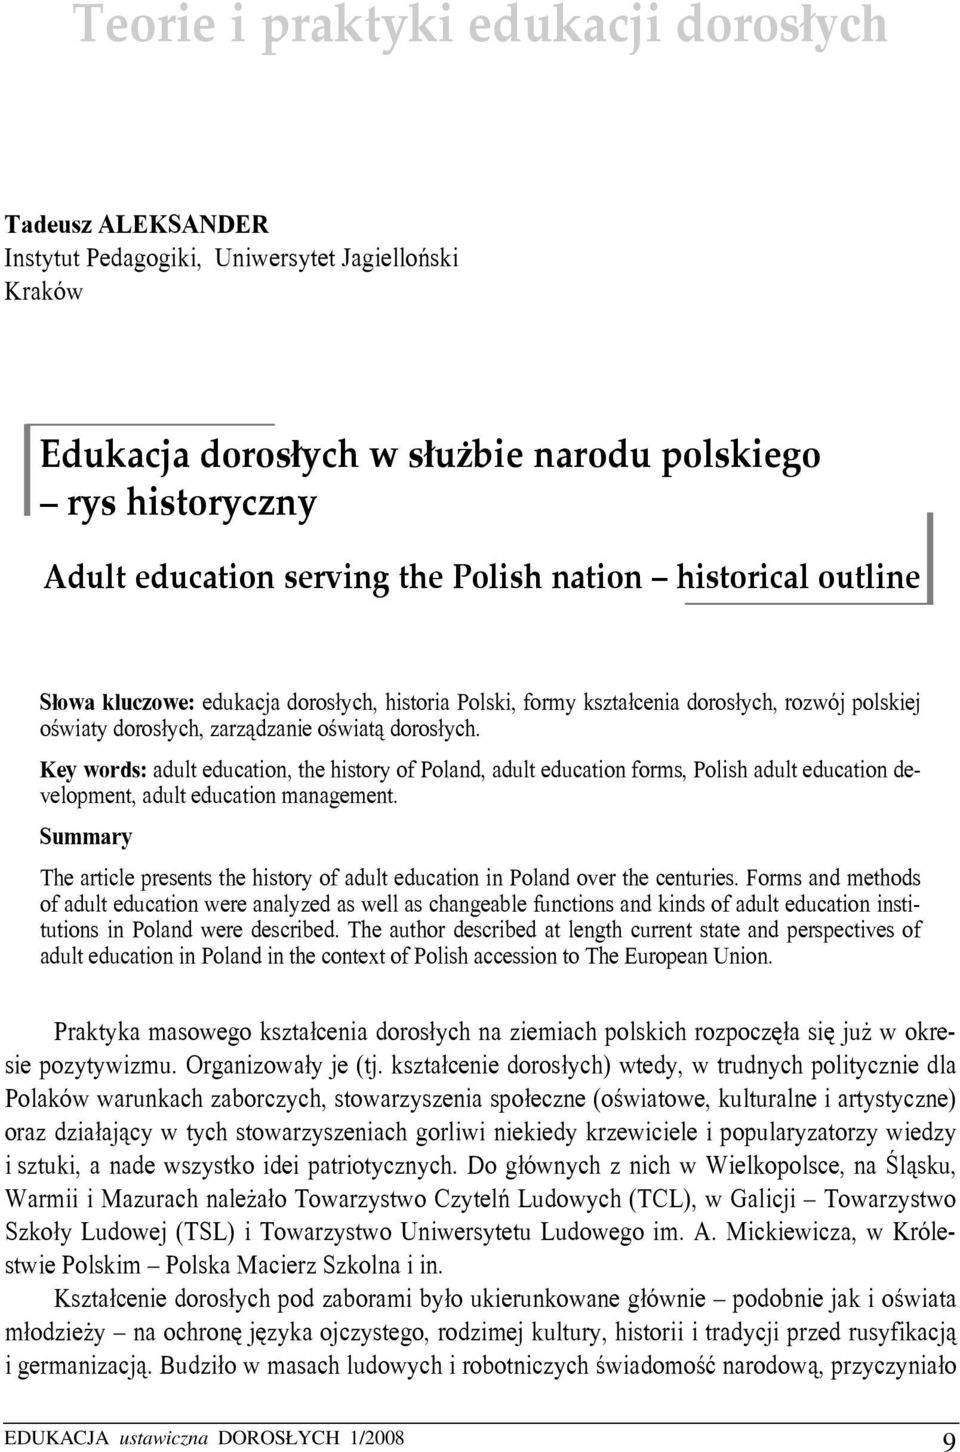 Key words: adult education, the history of Poland, adult education forms, Polish adult education development, adult education management.